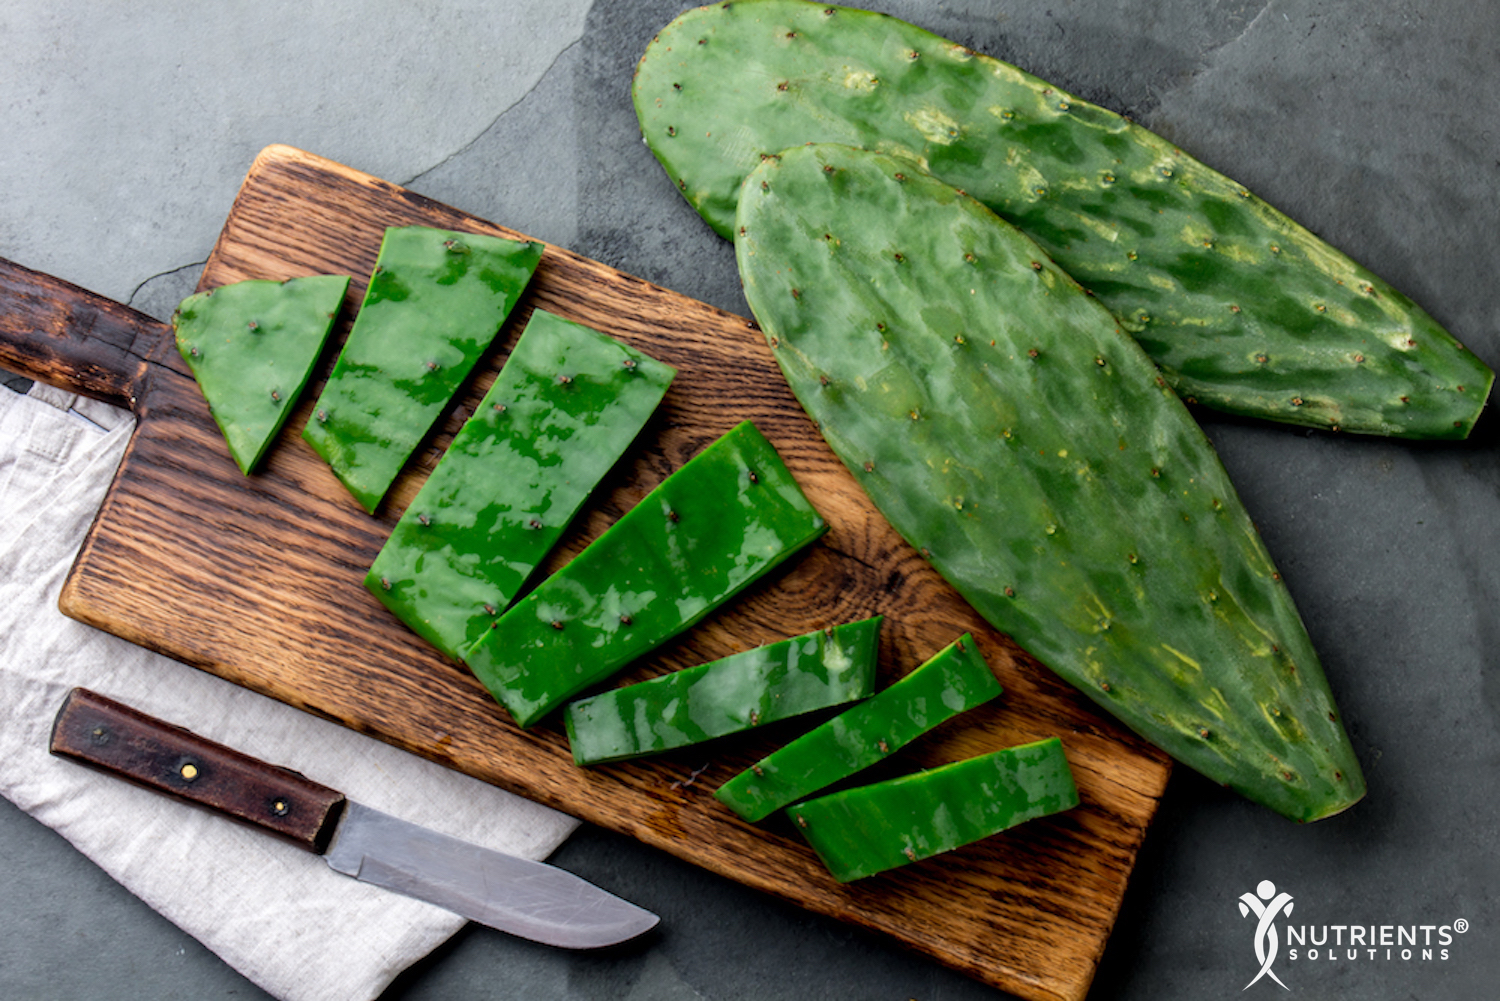 Nopal Opuntia Healing Properties Used For Centuries